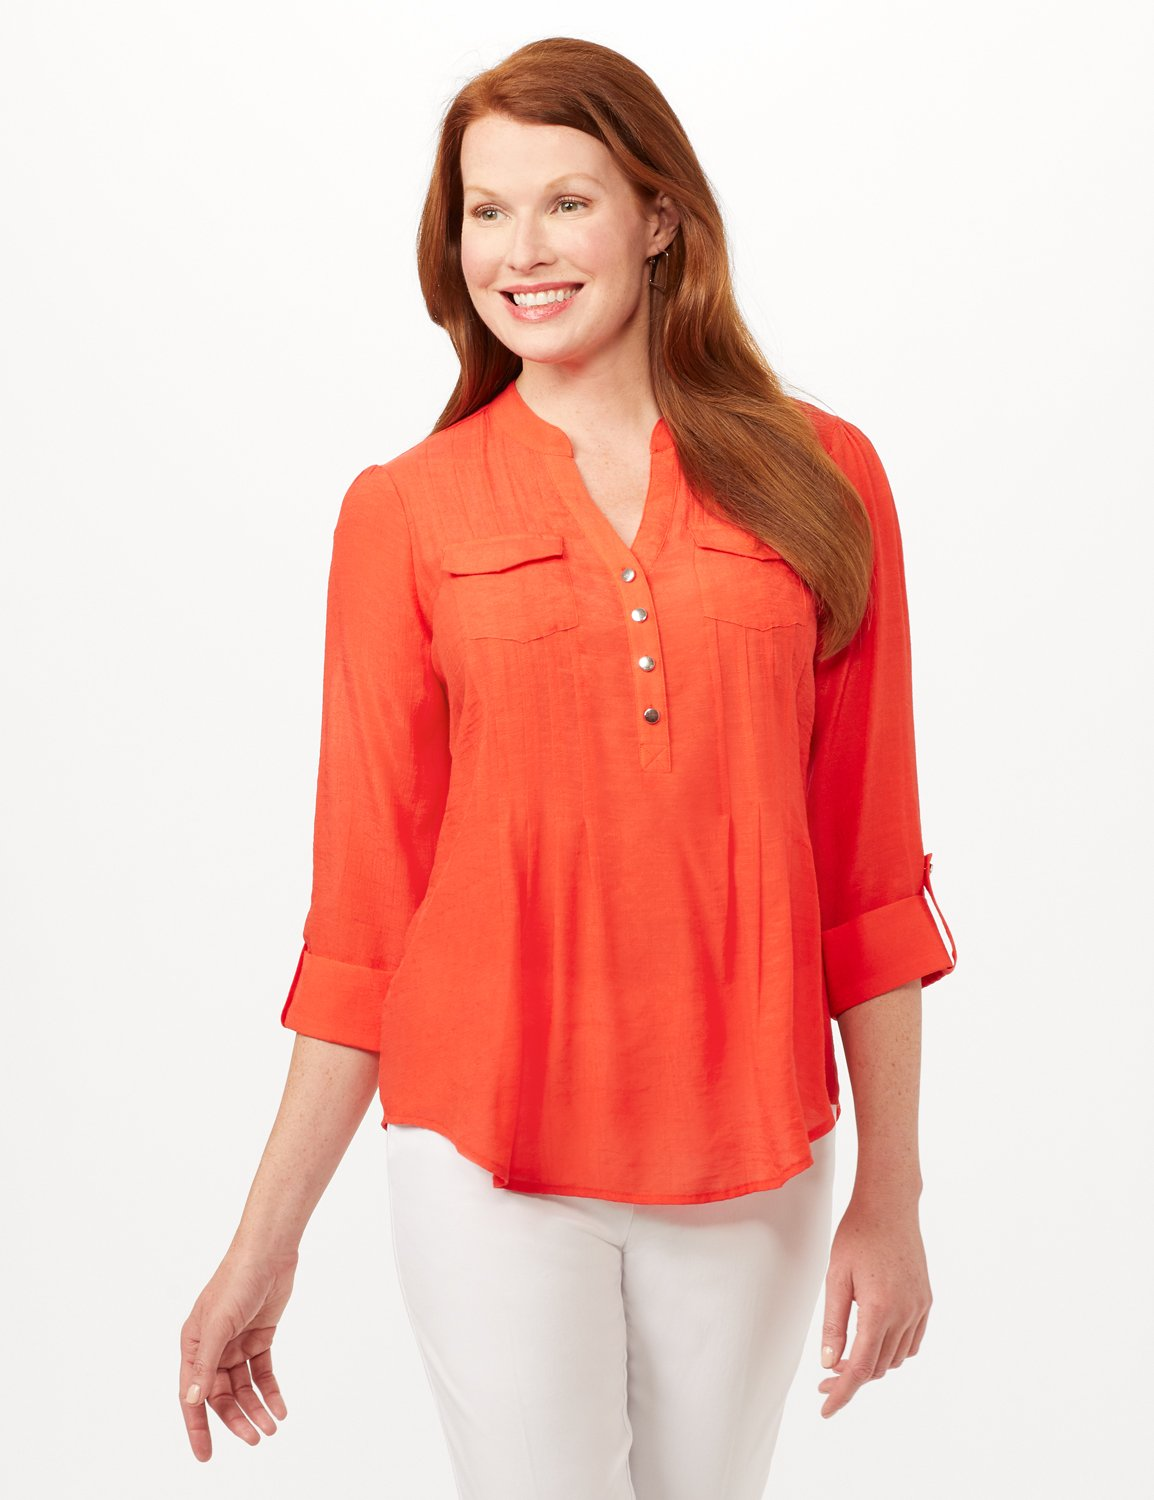 Pintuck Textured Button Popover Top -Bright Orange - Front